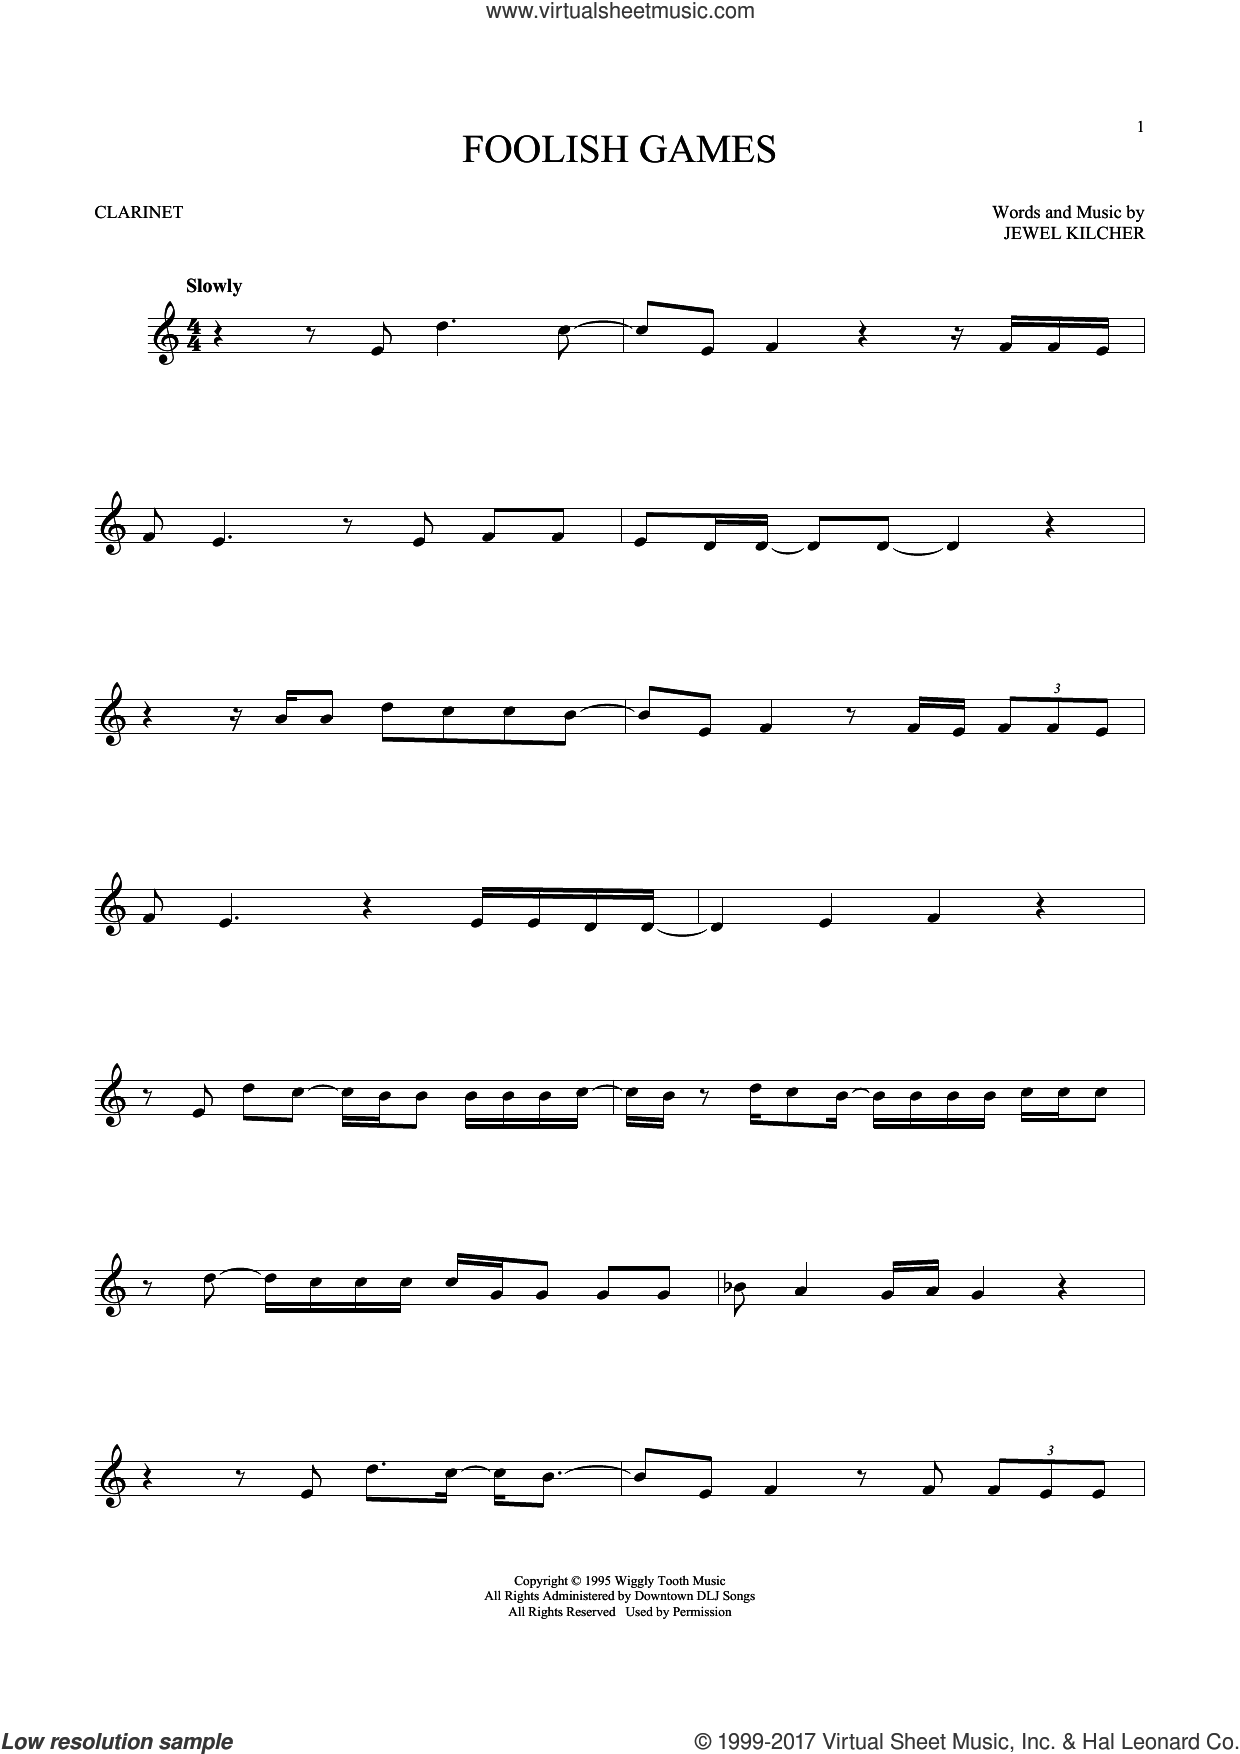 Foolish Games sheet music for clarinet solo by Jewel and Jewel Kilcher, intermediate clarinet. Score Image Preview.